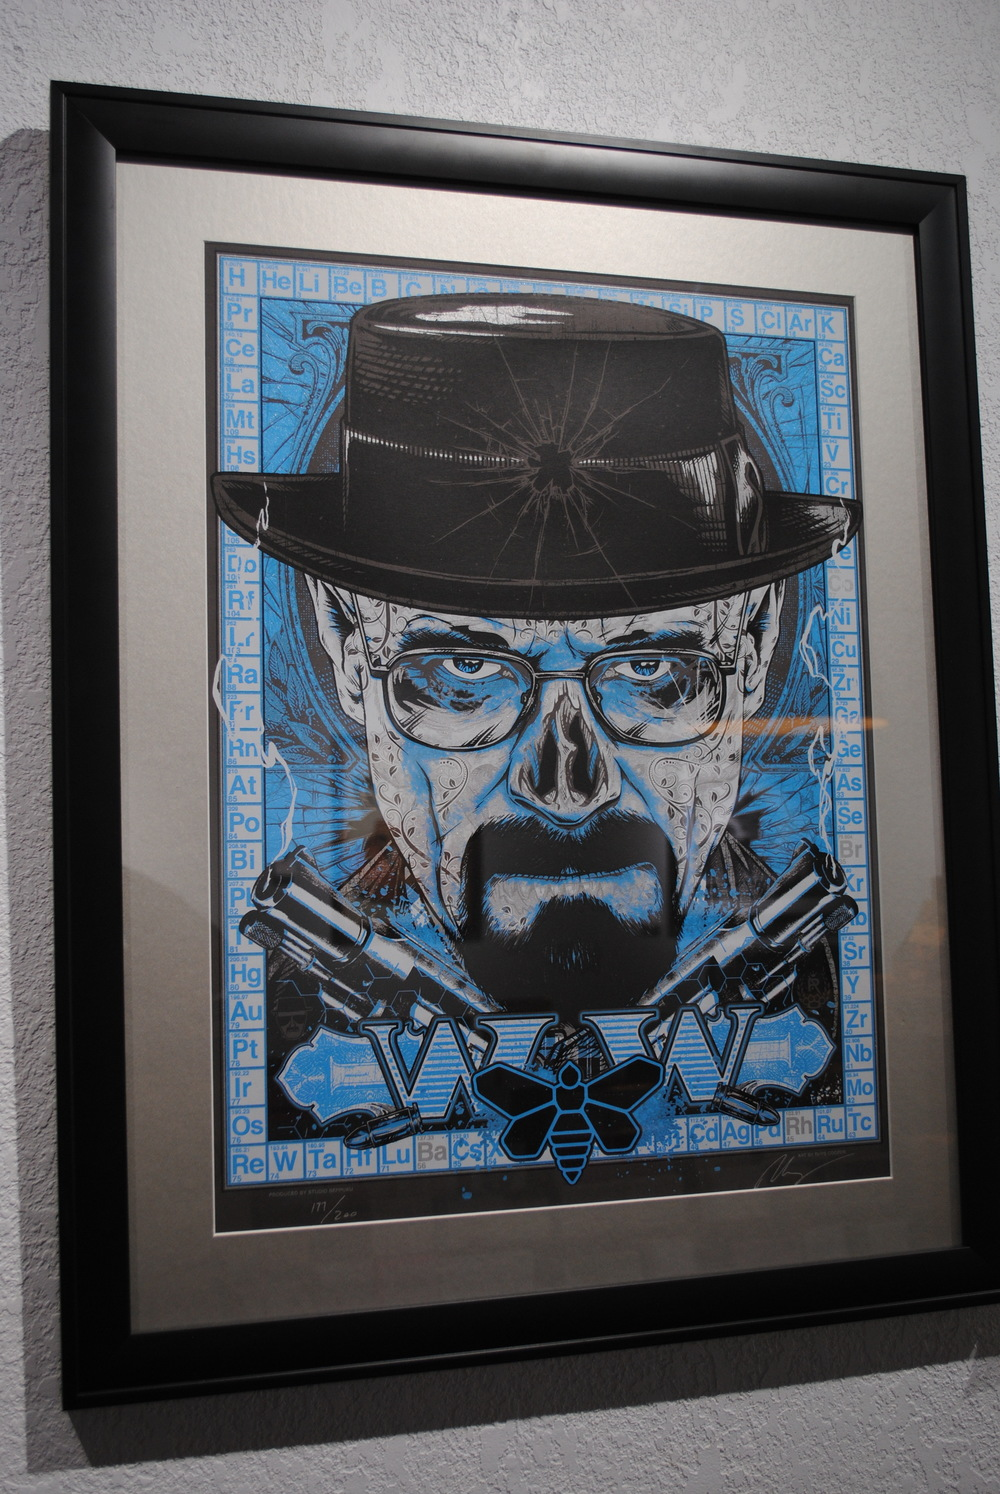 Rhys Cooper silkscreen in metallic inks of Walter White in Breaking Bad. $350